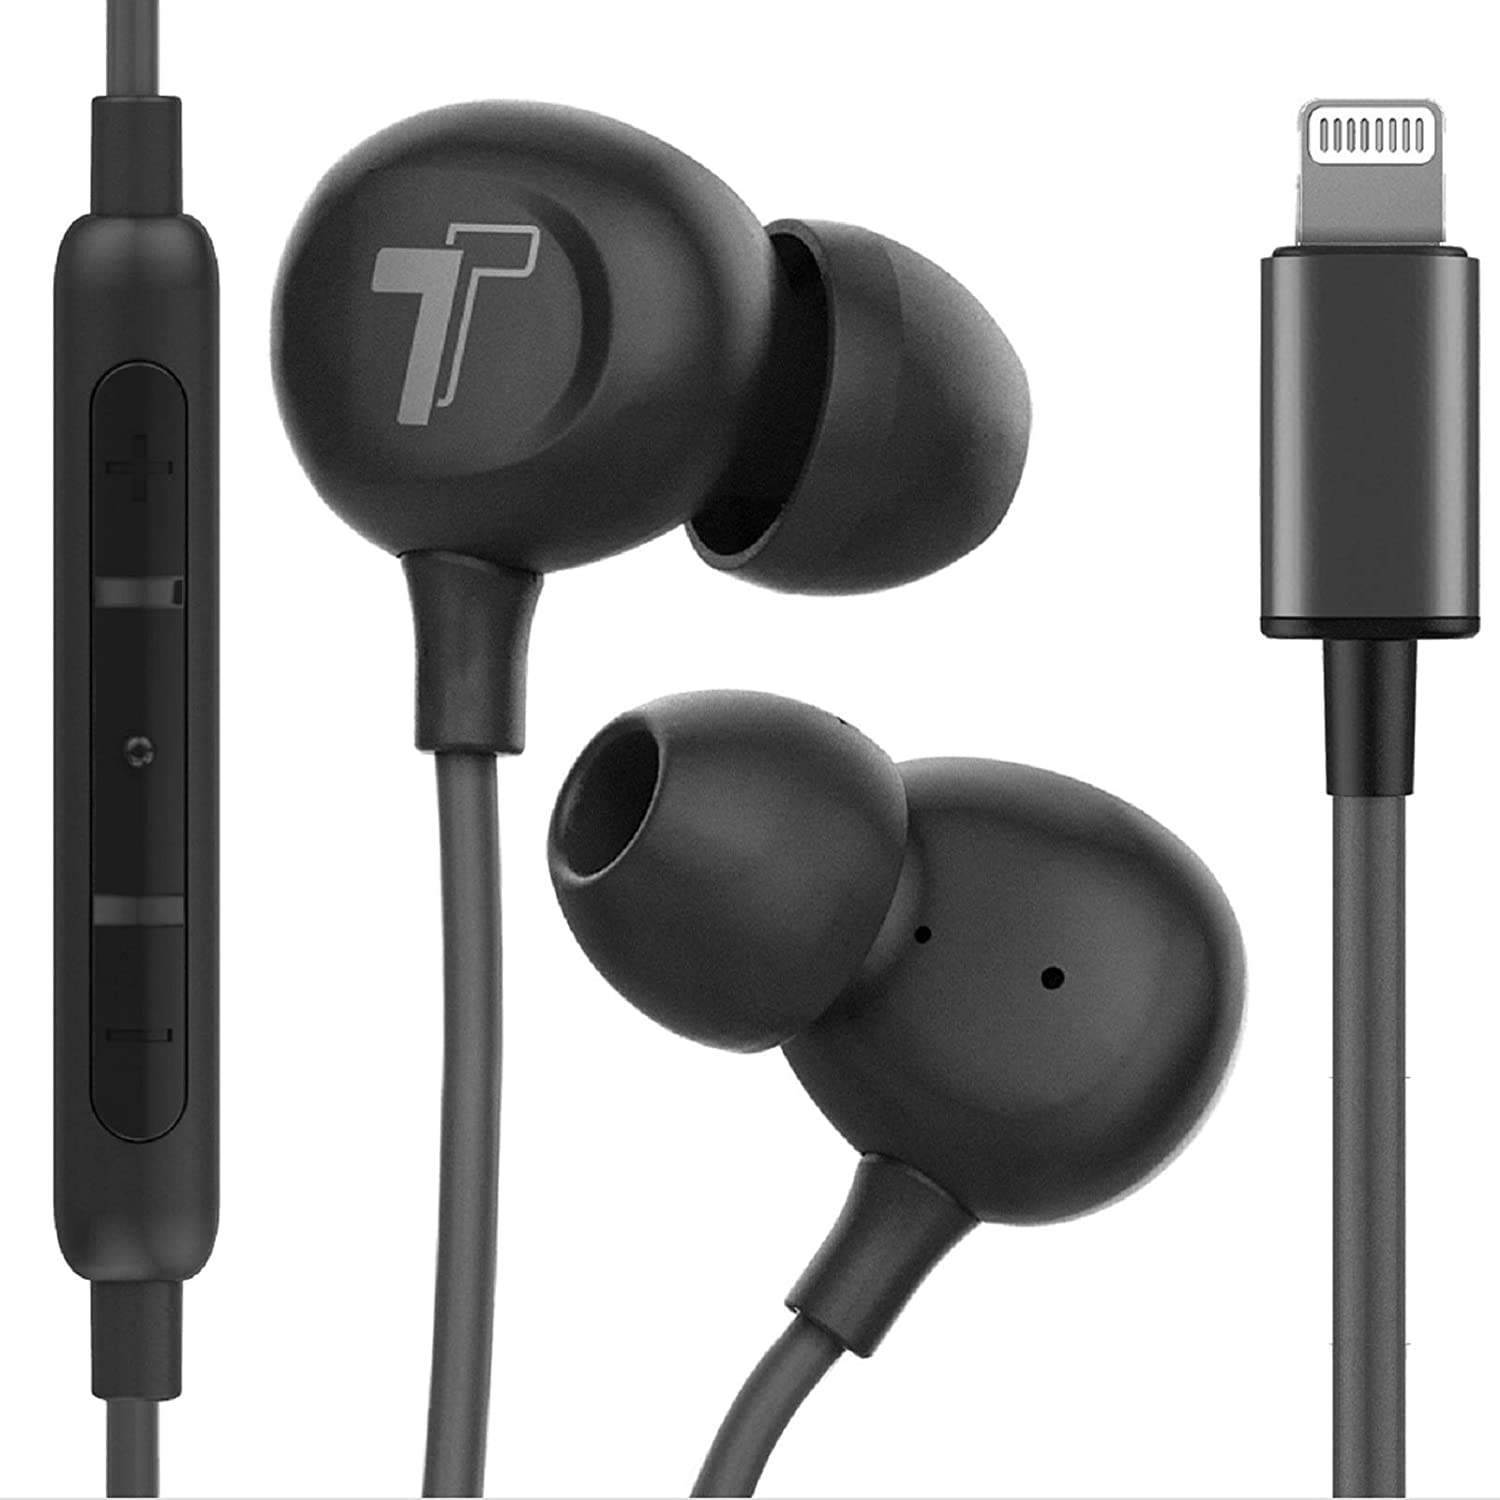 Thore Compatible with iPhone Earbuds (Apple MFi Certified) Lightning Connector in-Ear Earphones (V60) Wired Headphones with Microphone for iPhone 12 Pro Max/Mini/11/XR/Xs /7/8/SE - Black